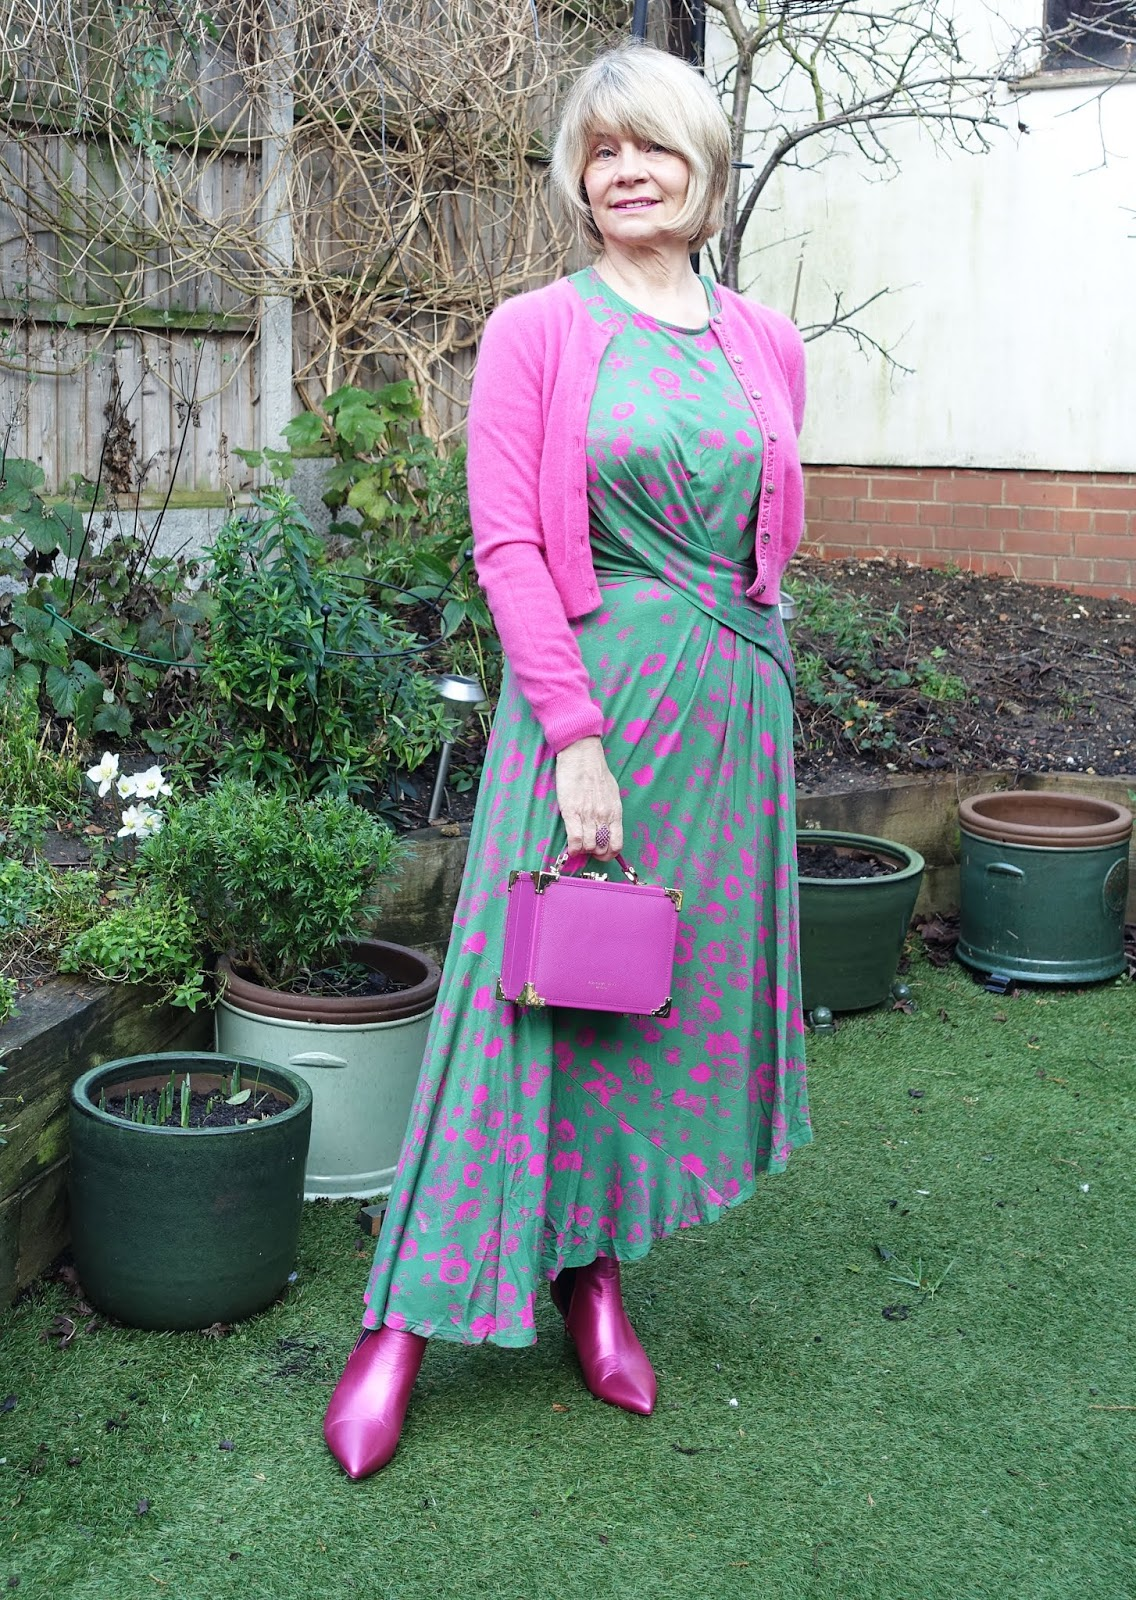 Pink and green: Gail Hanlon from over-50s blog Is This Mutton? in Studio by Preen dress and pink metallic boots